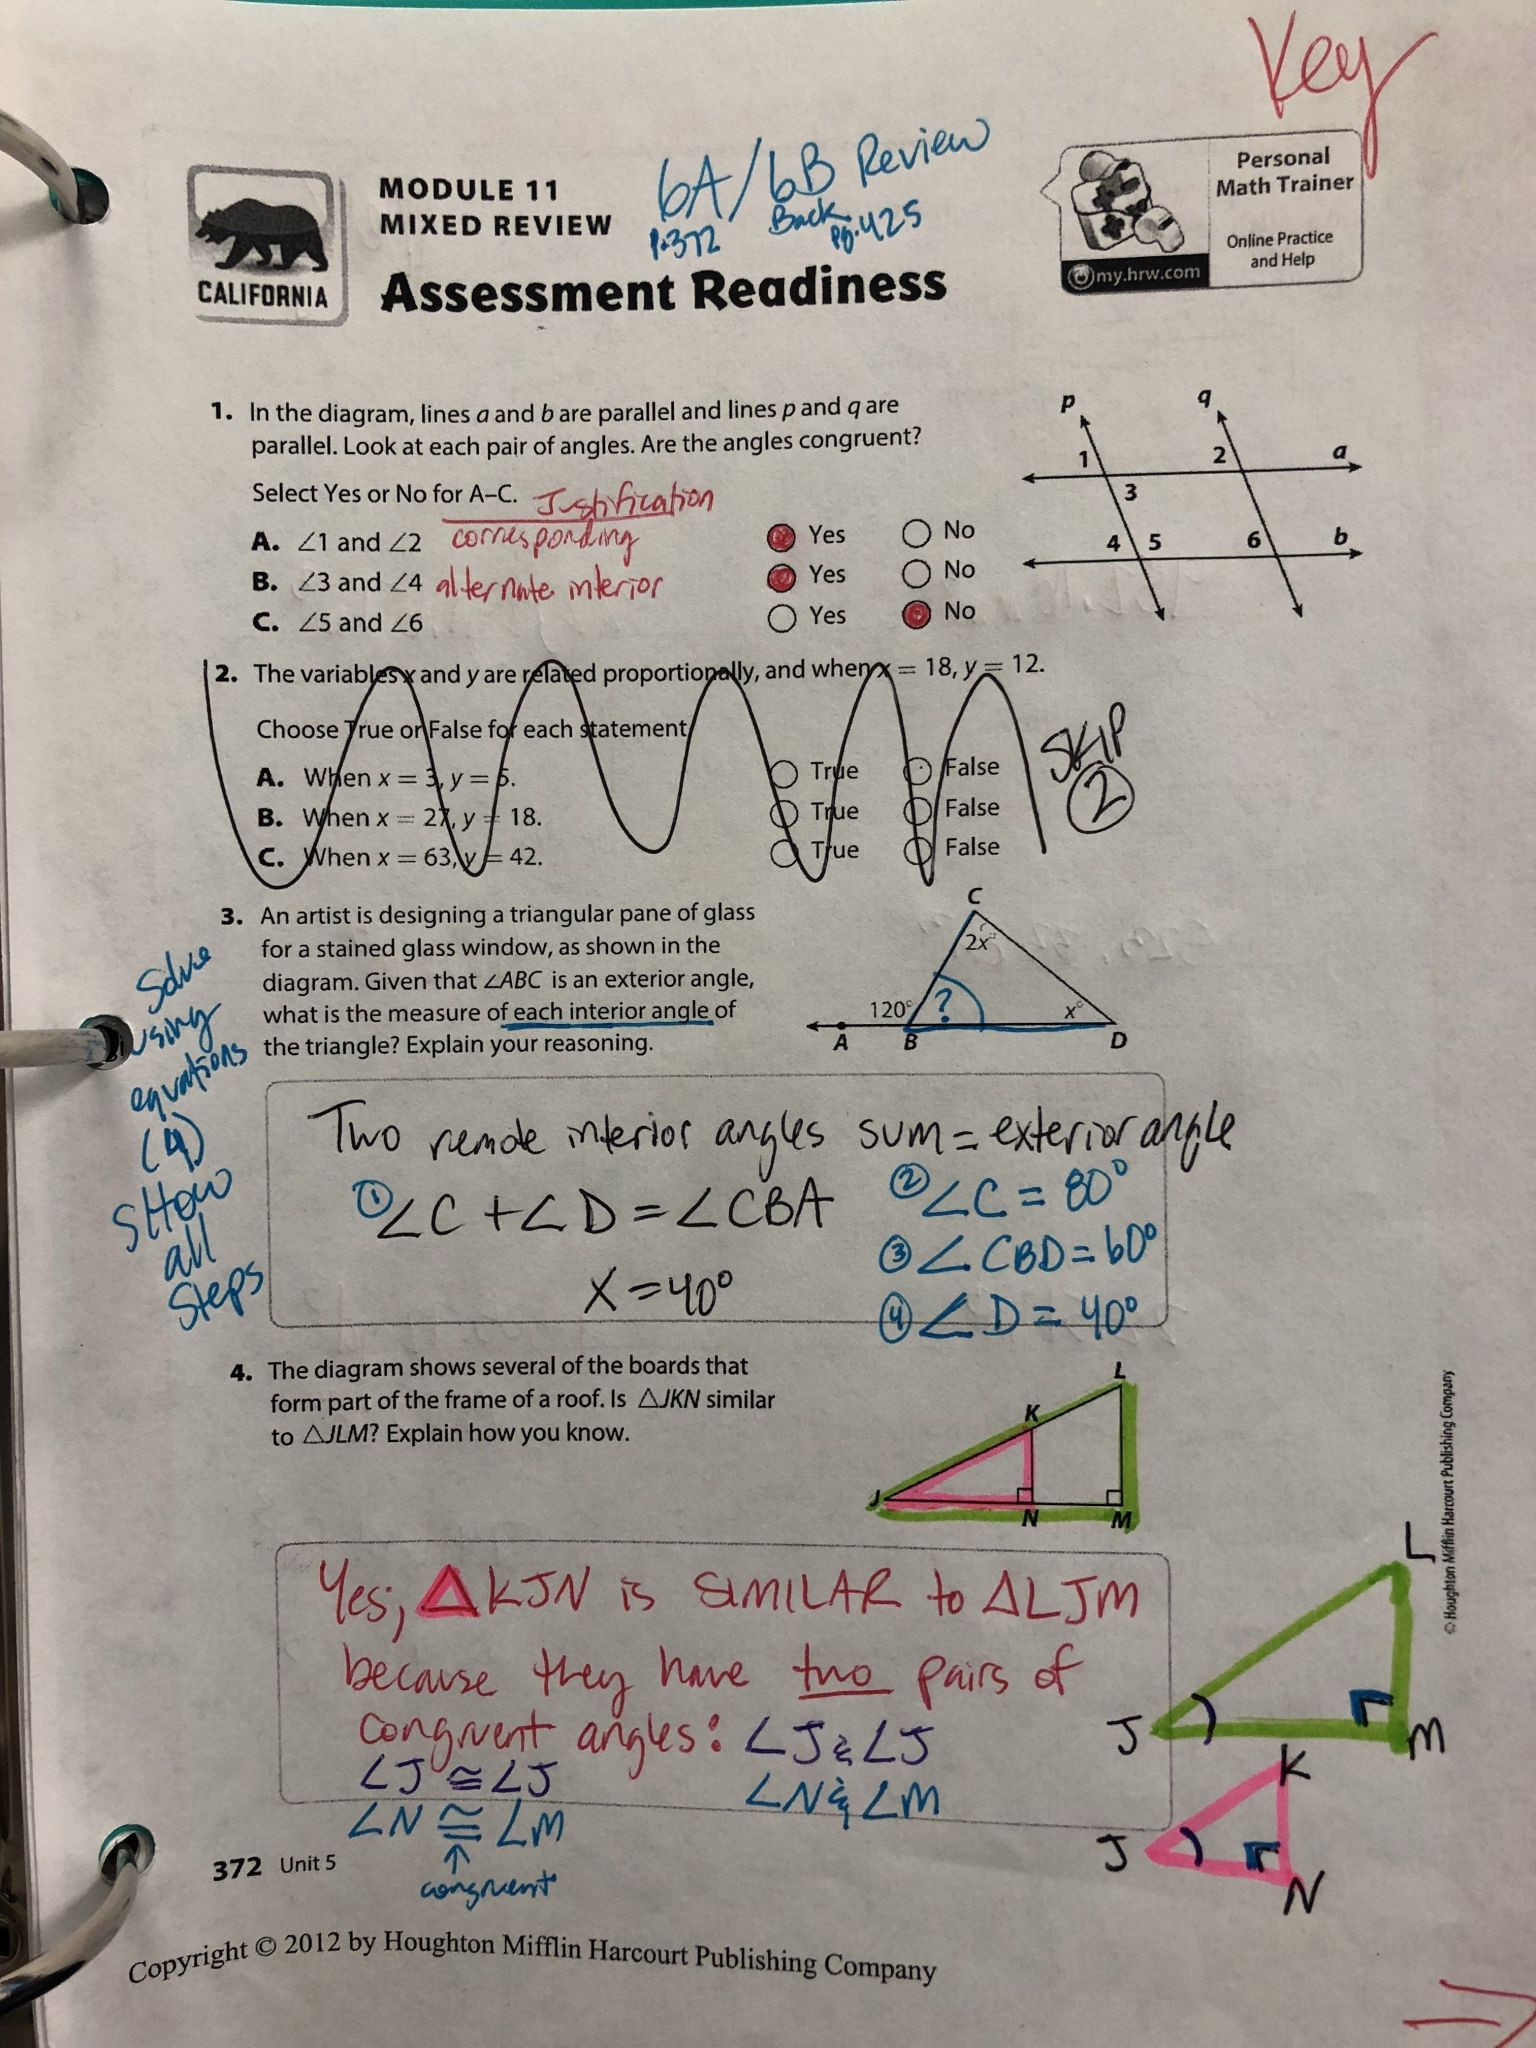 Multiplying Monomials Worksheet Answers Dividing Polynomials by Monomials Worksheet